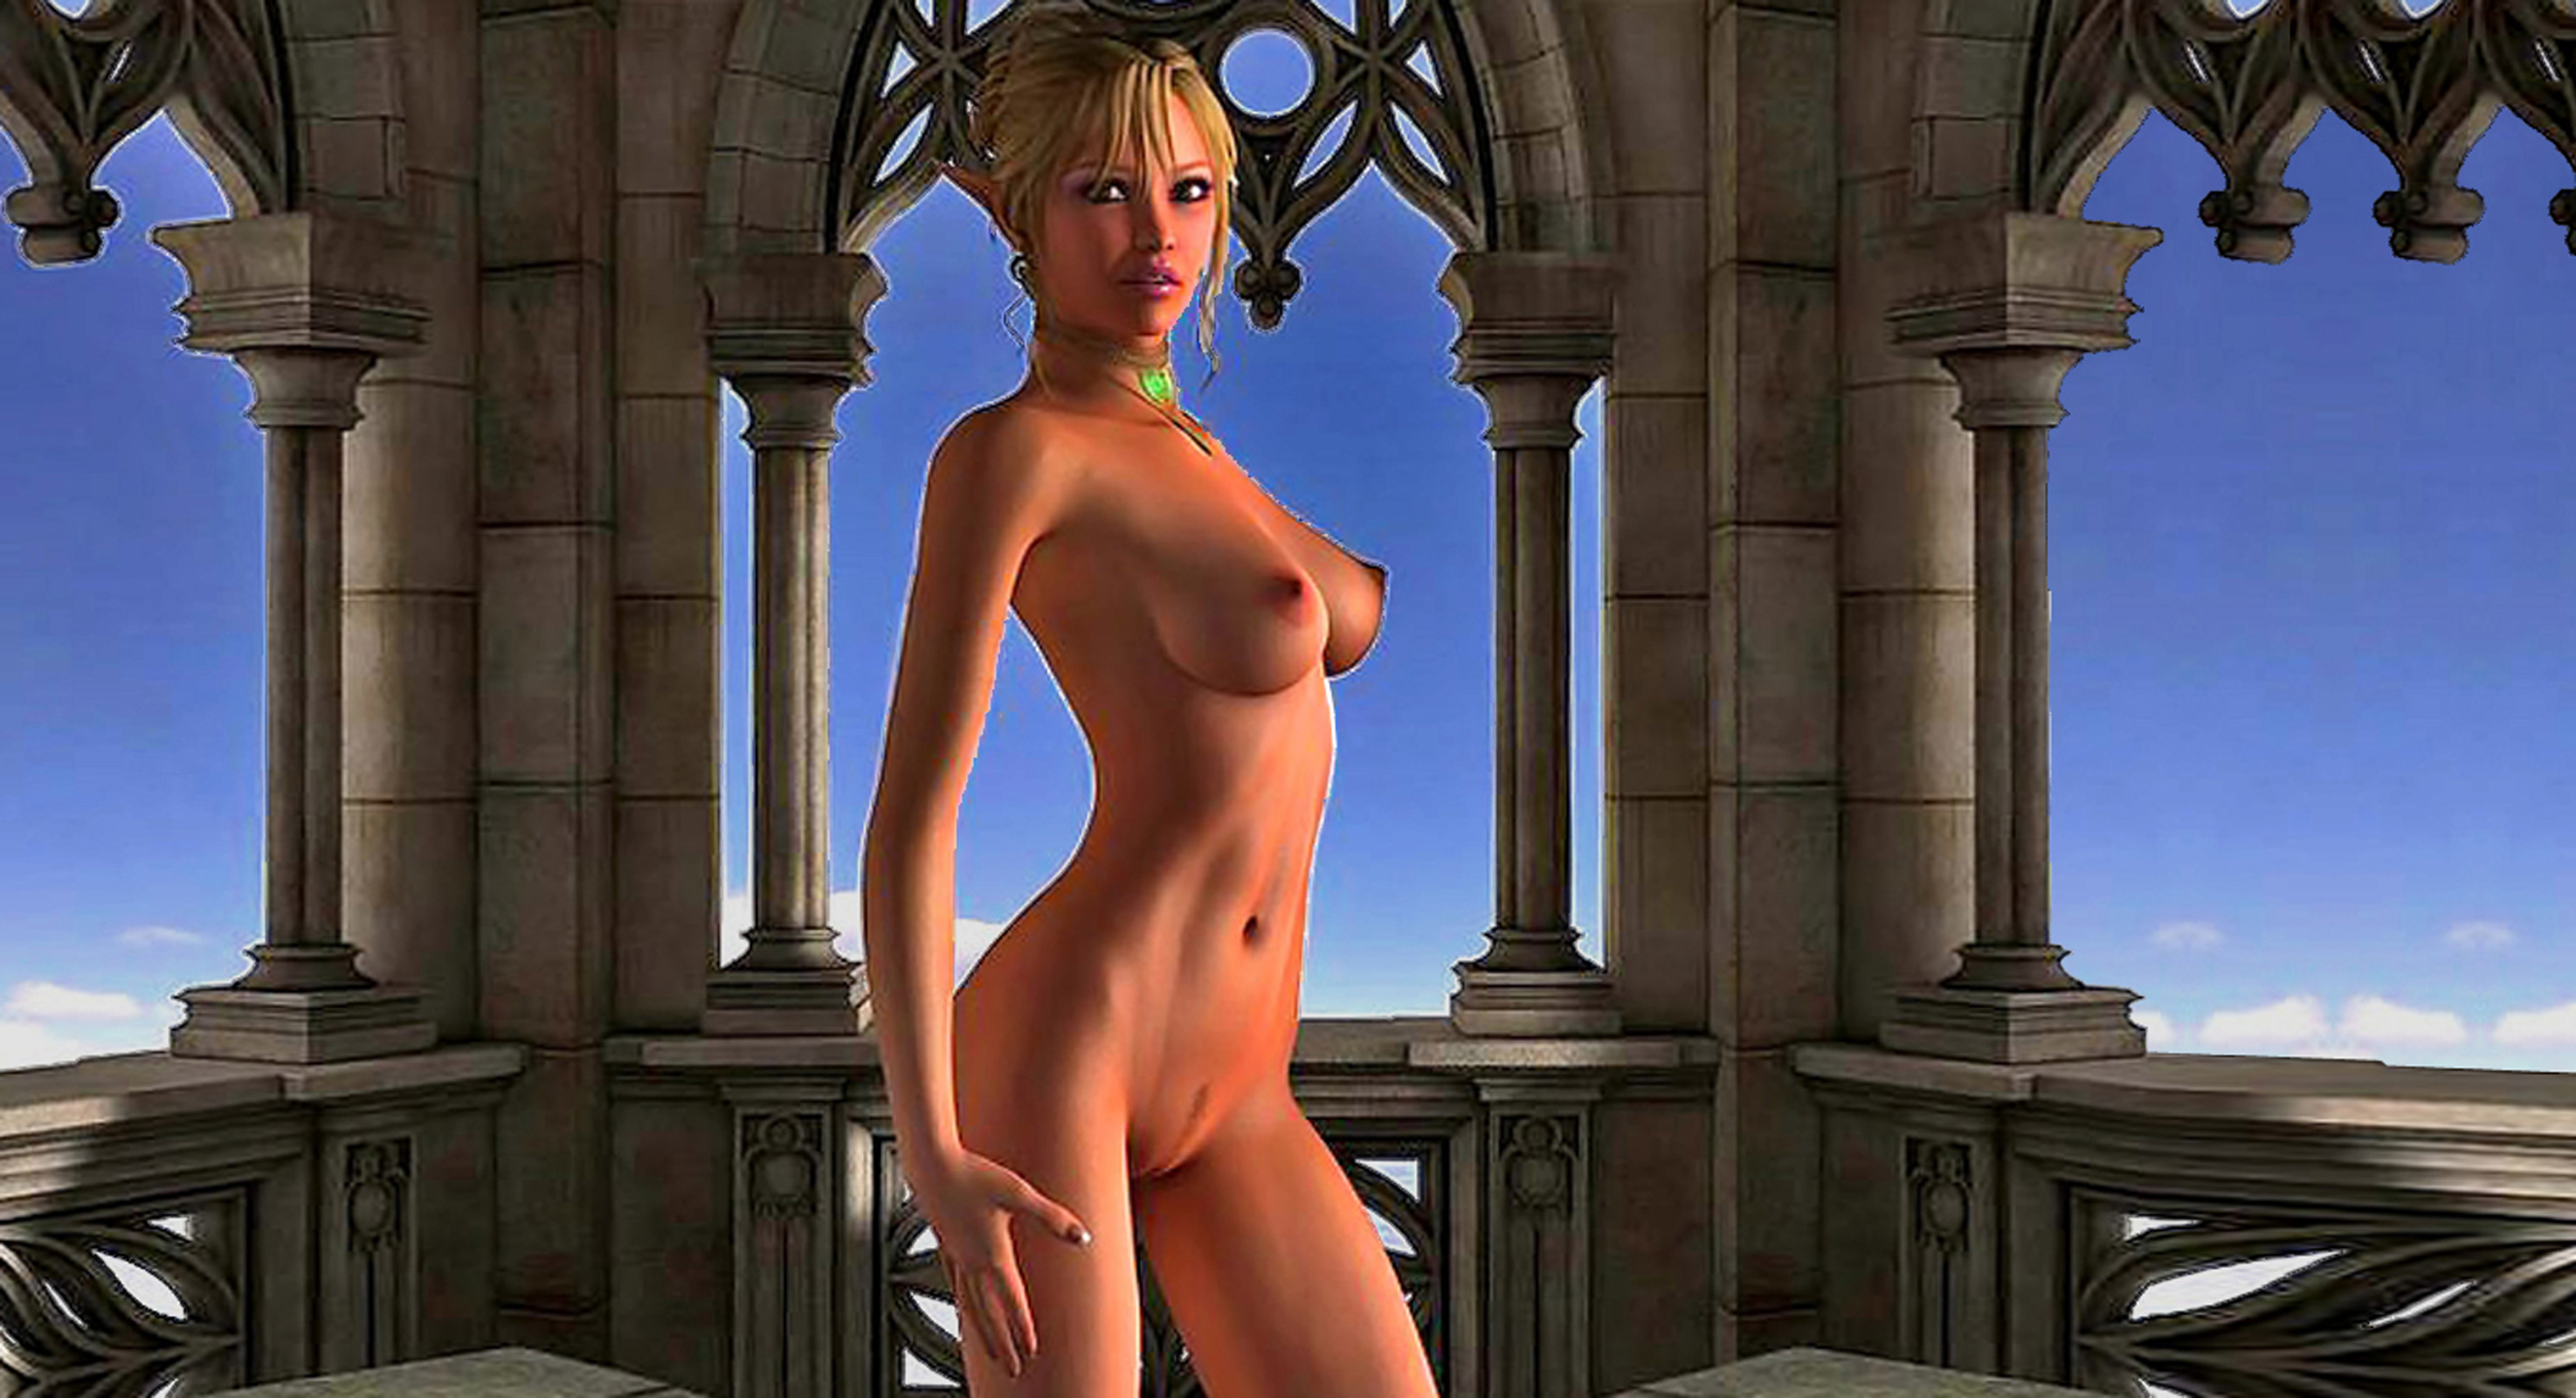 Princess nude in princess naked on the field